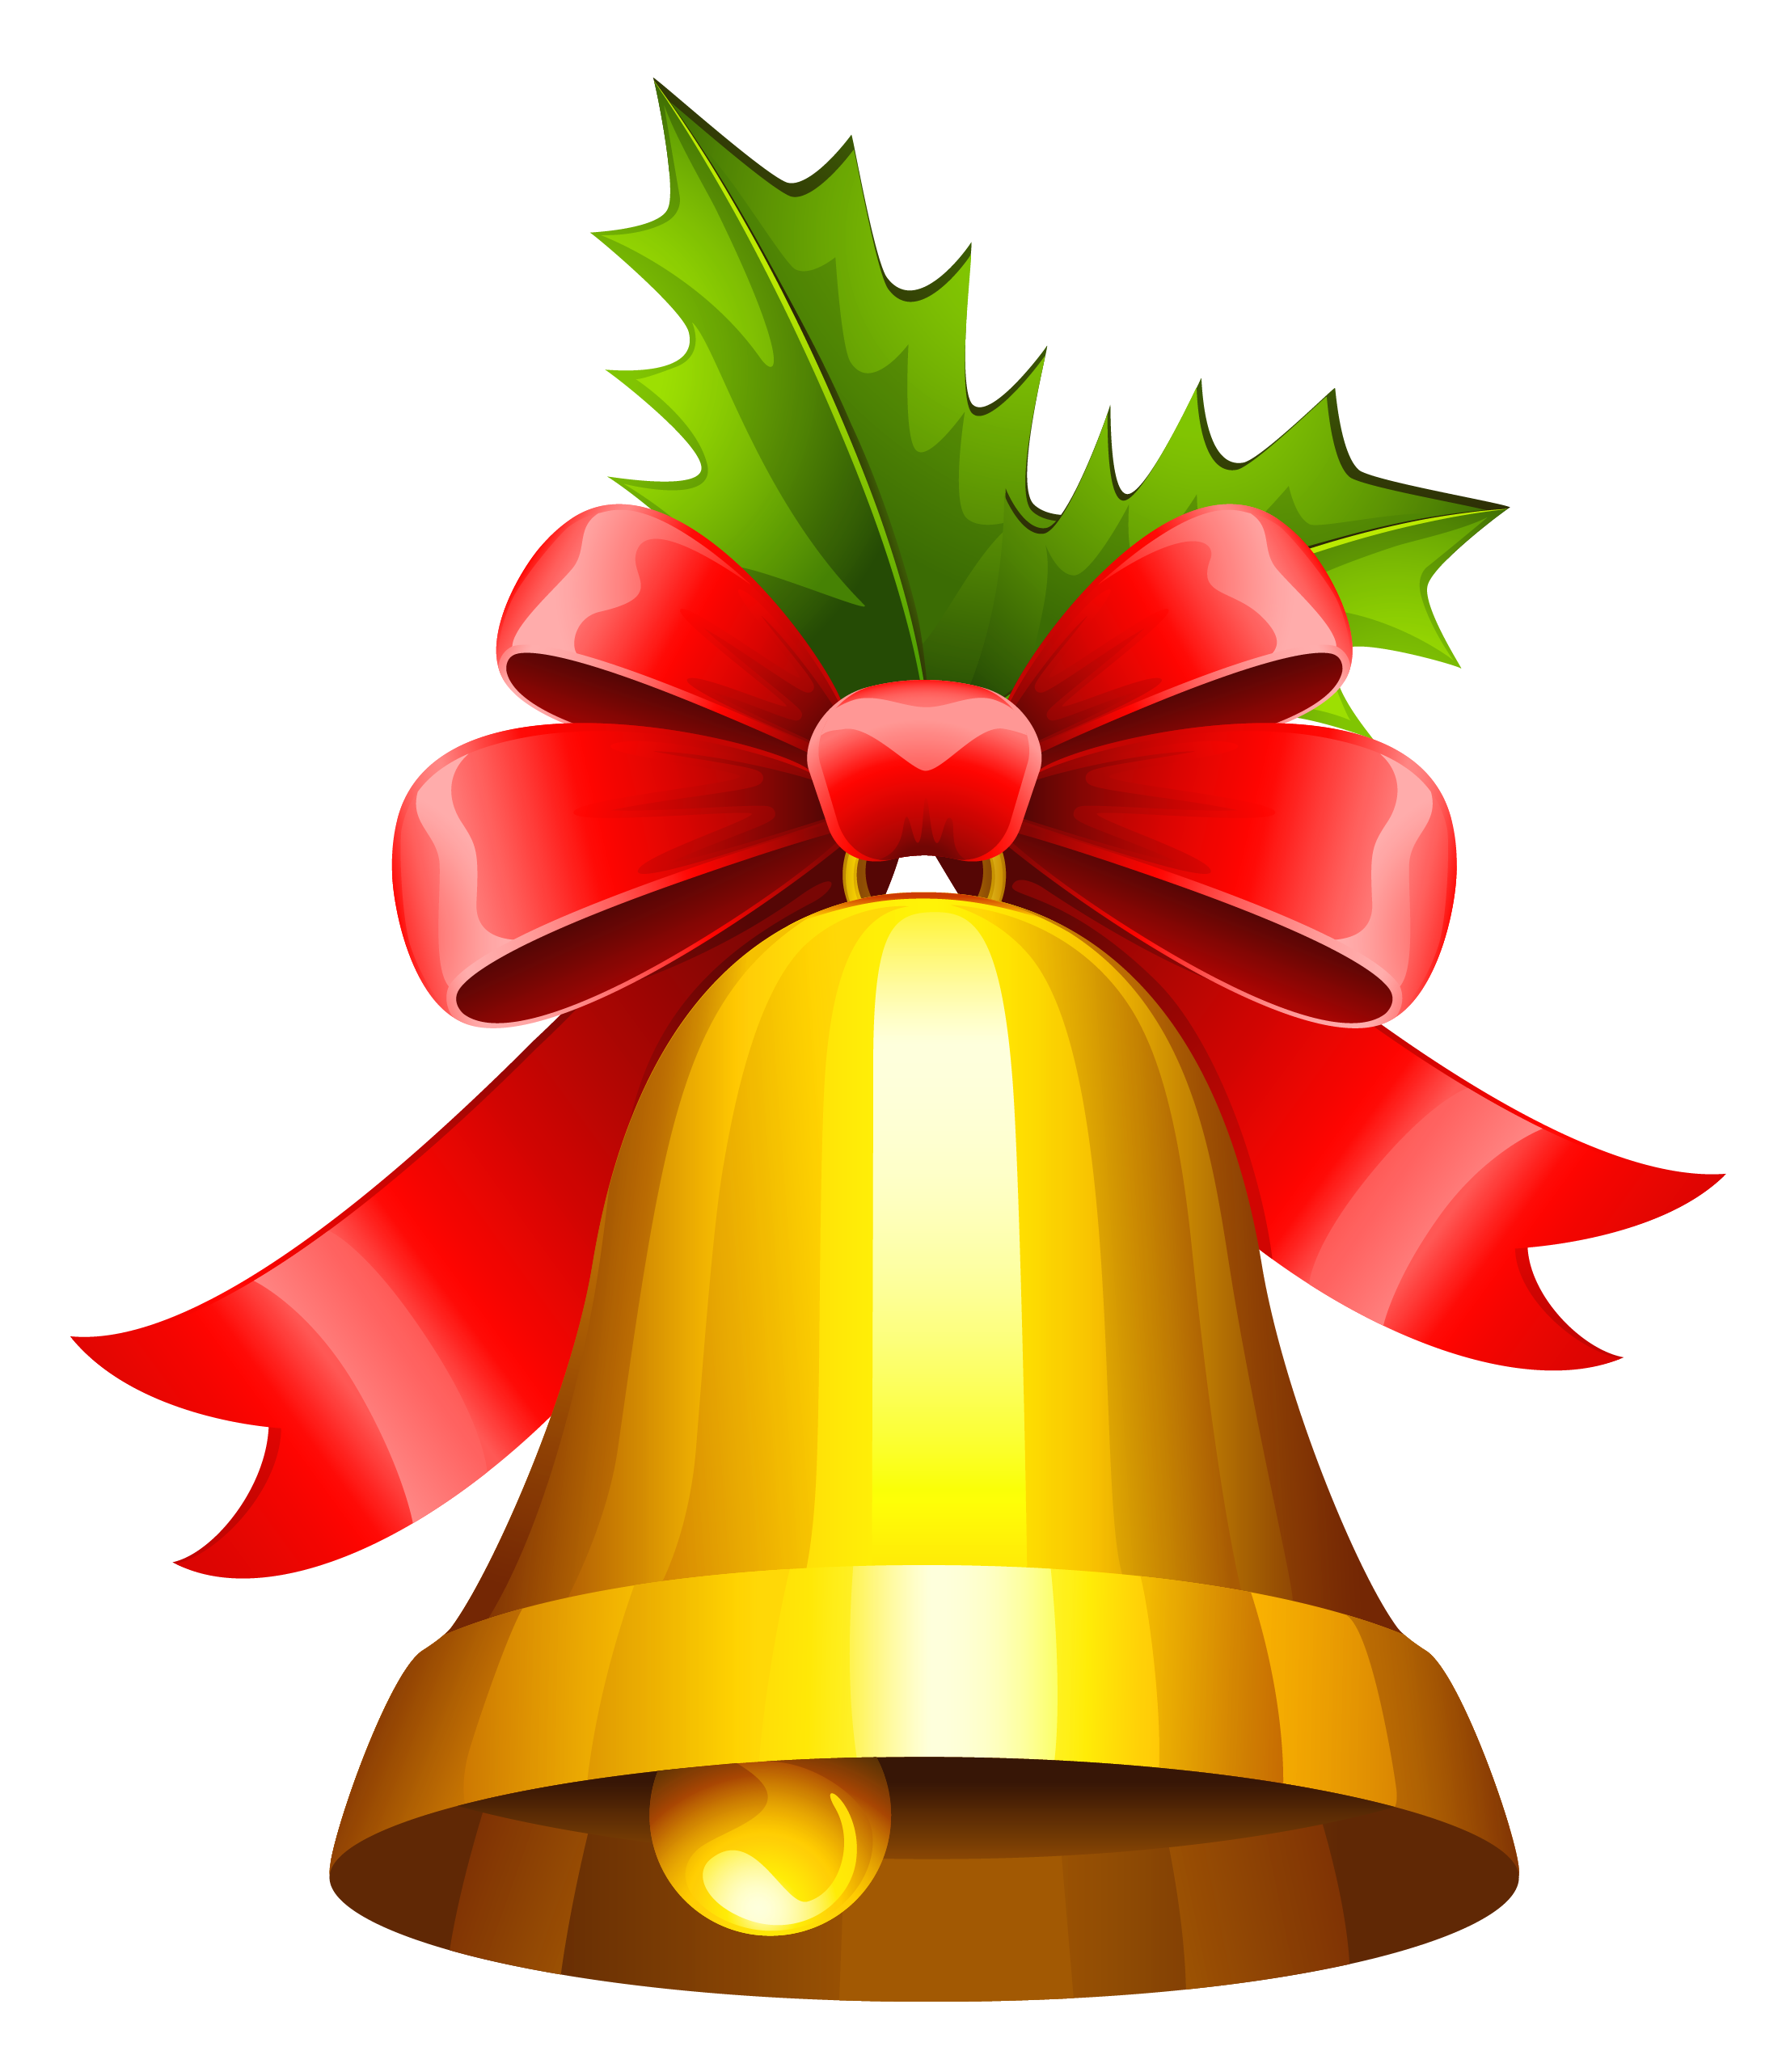 vector royalty free stock Bell png transparent images. Christmas bells clipart